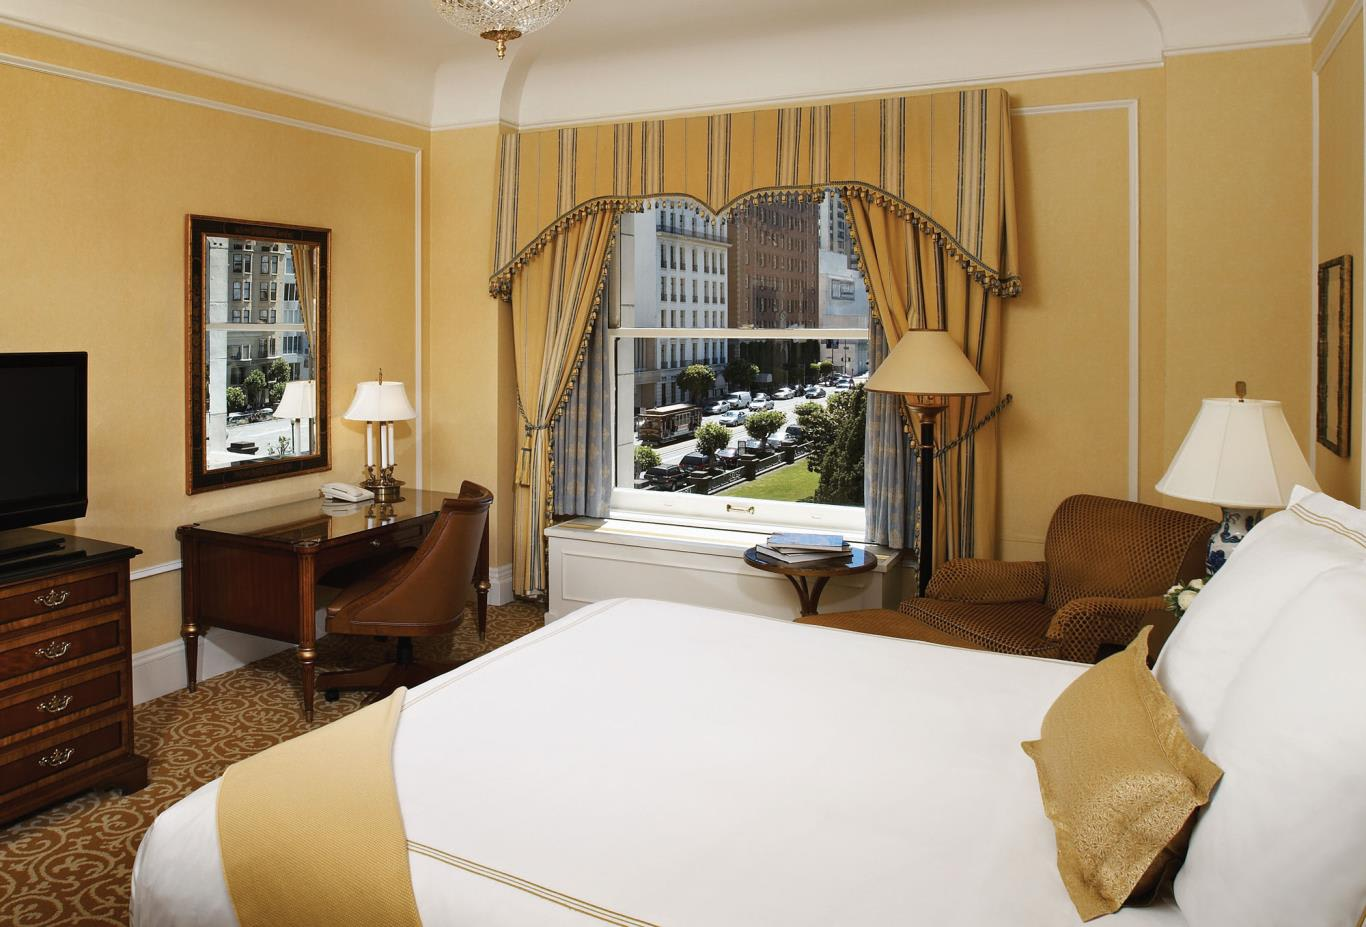 Fairmont exterior room (King bed)